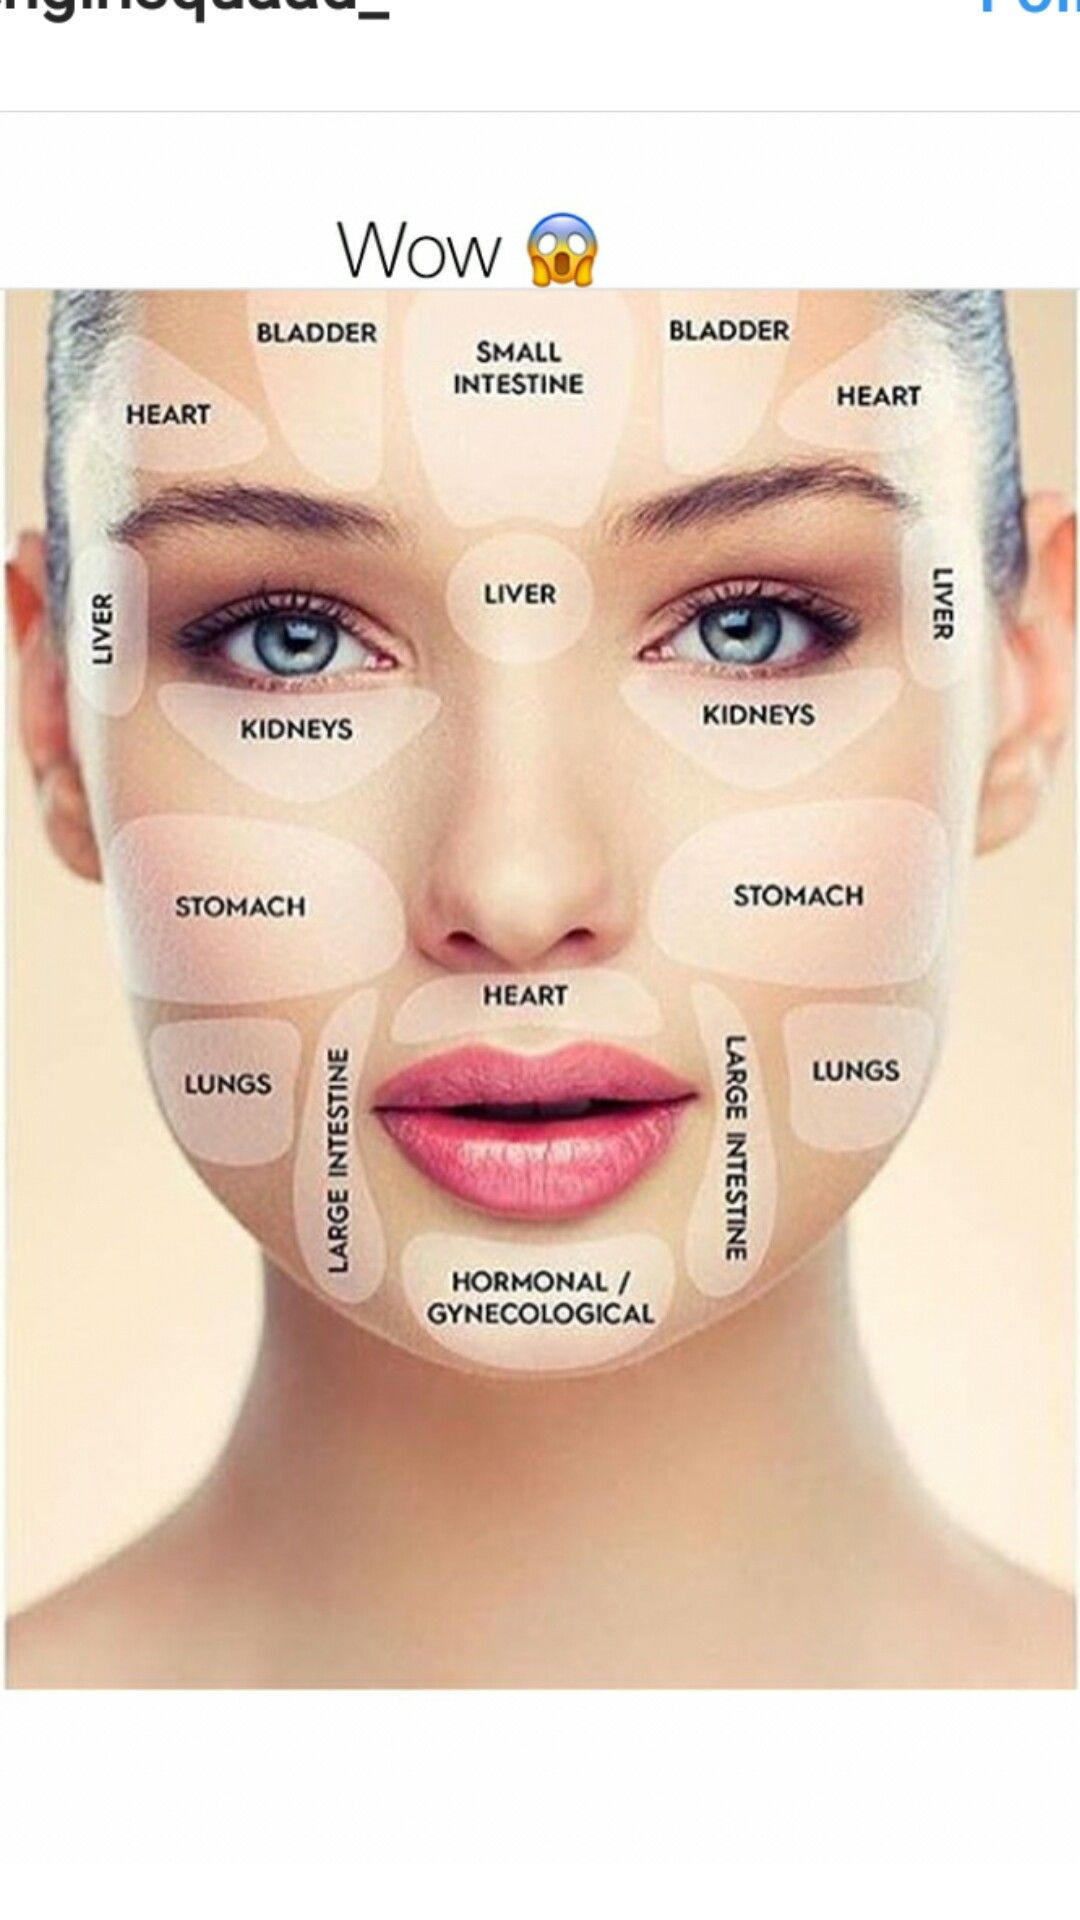 Acne causes chart also seatle davidjoel rh